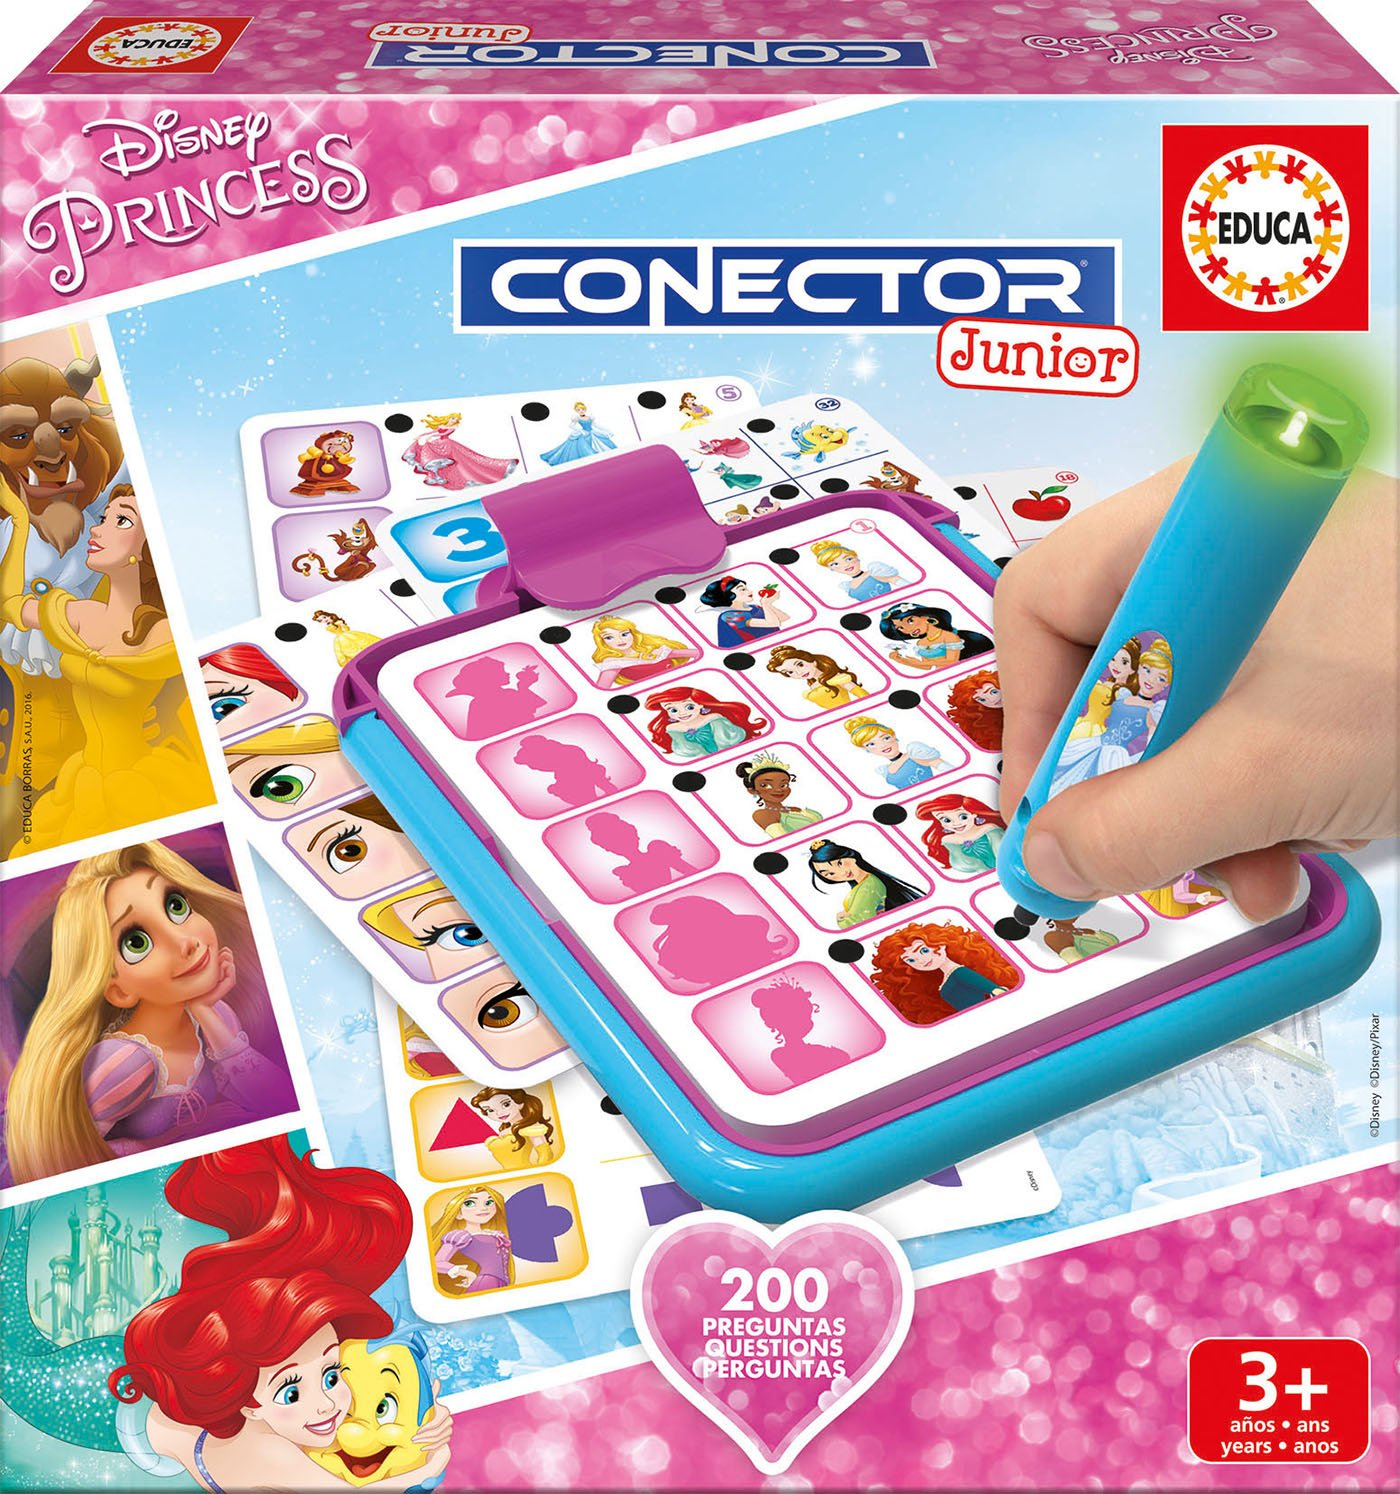 Educa 17200.0 - Conector Junior Disney Princess Educa Borras